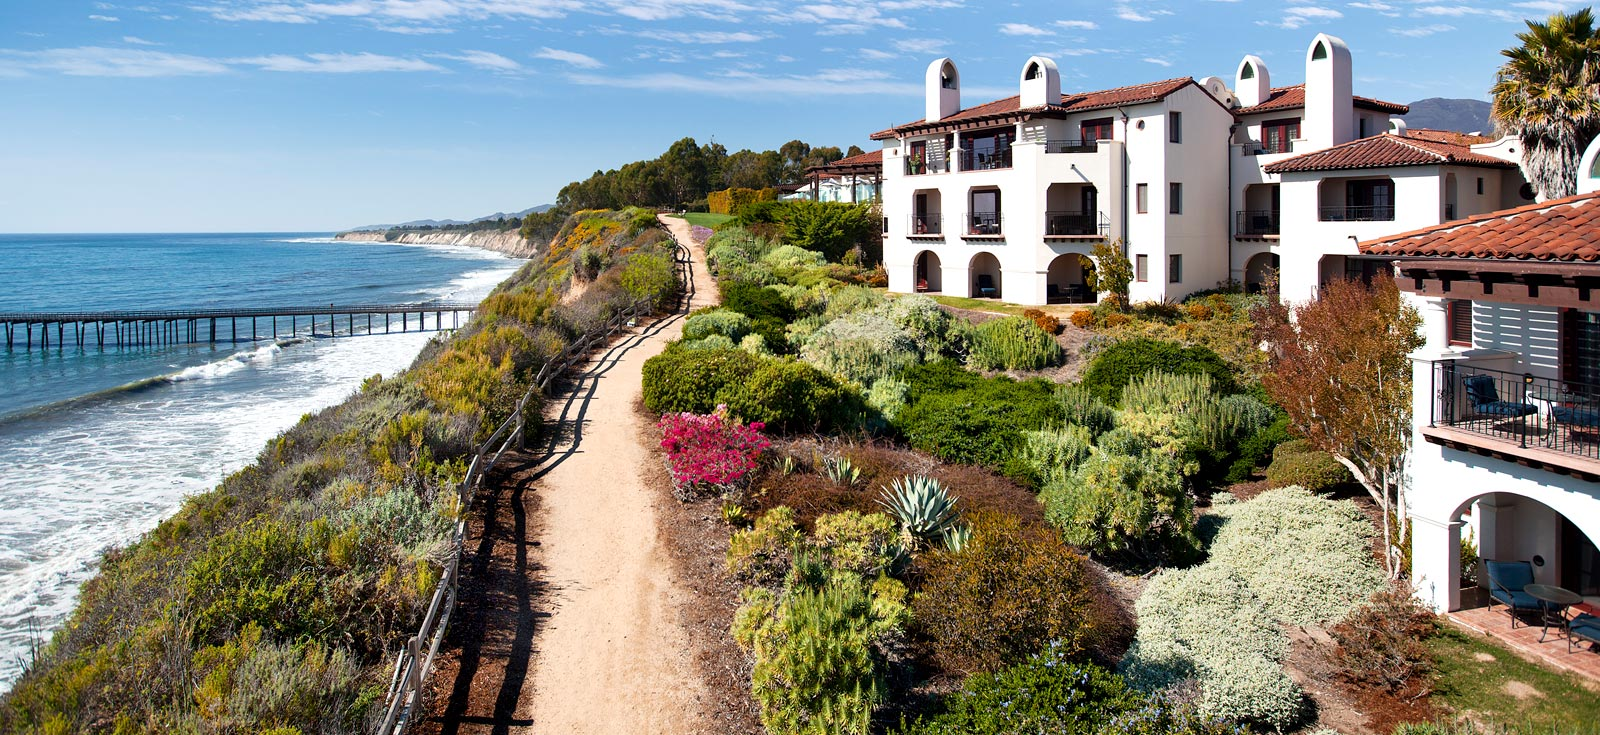 The 10 Hottest Vacation Destinations For Summer Her Beauty Boutique Goleta Hotel Close To Everything Your Santa Barbara Launching Pad Oceanfront